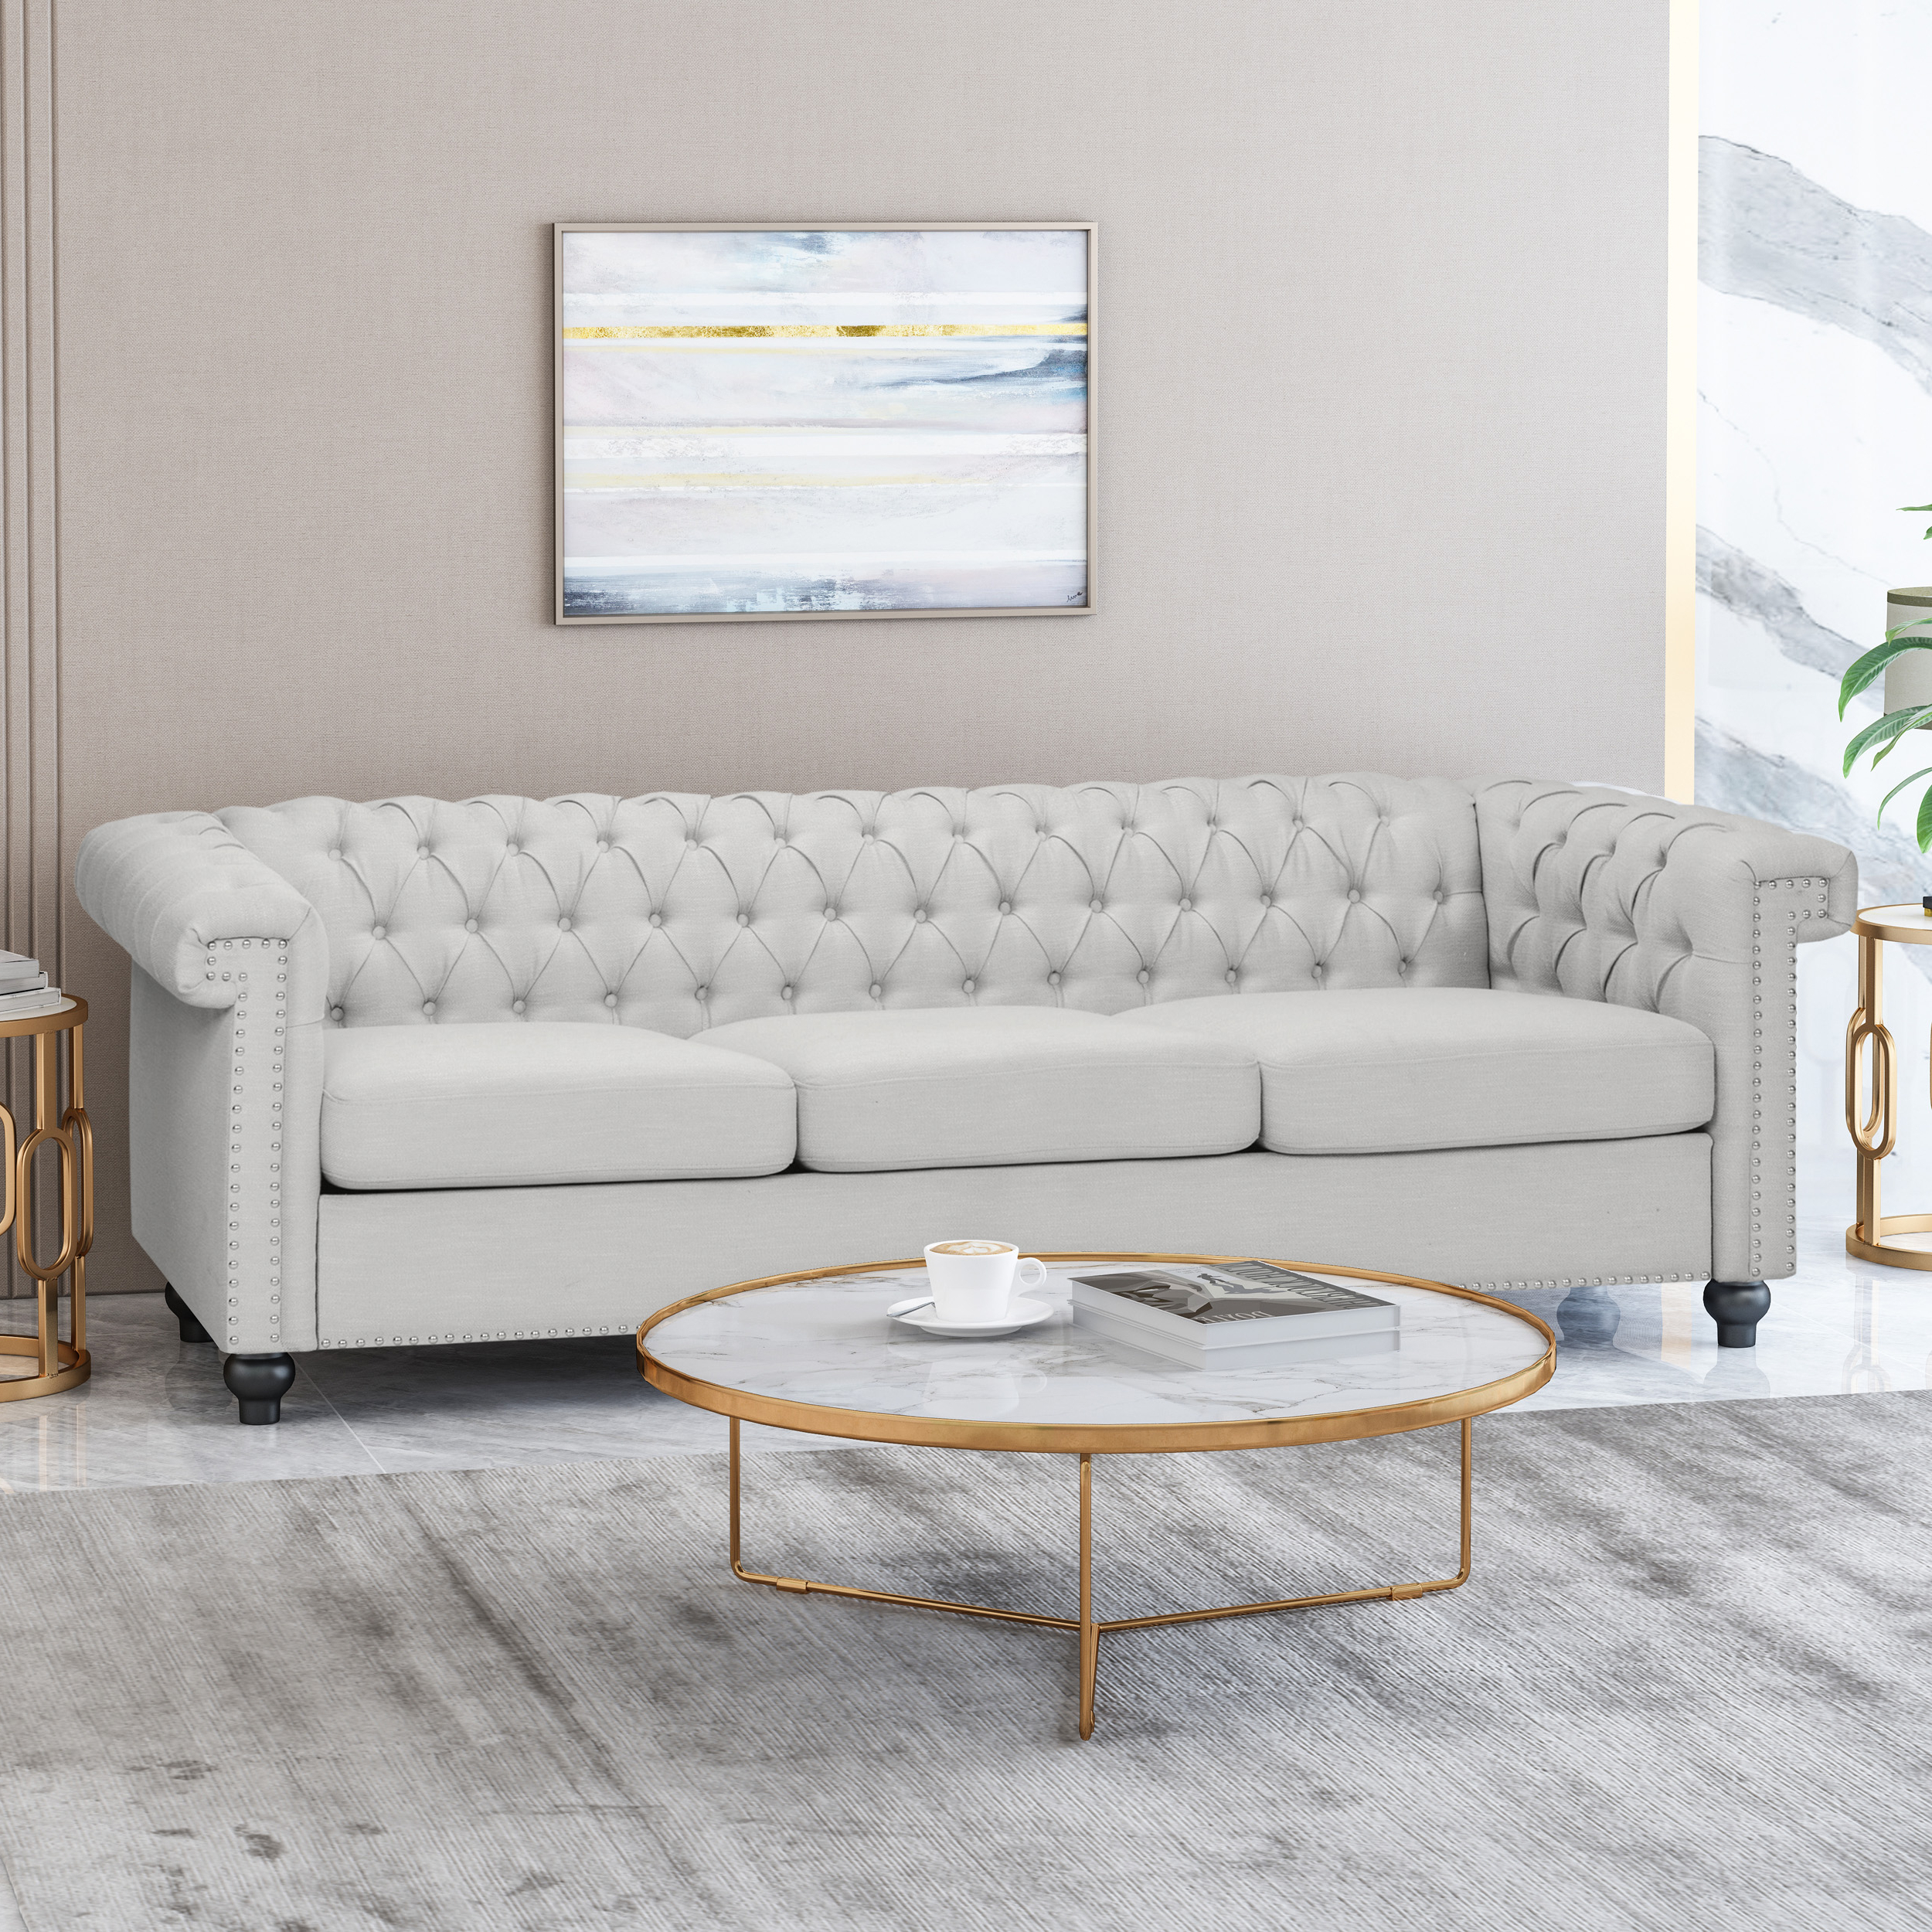 Starks Tufted Fabric Chesterfield Chair And Ottoman Sets With Most Recent Noble House Conrado Tufted Chesterfield Fabric 3 Seater Sofa, Pebble Gray  And Dark Brown (View 15 of 20)